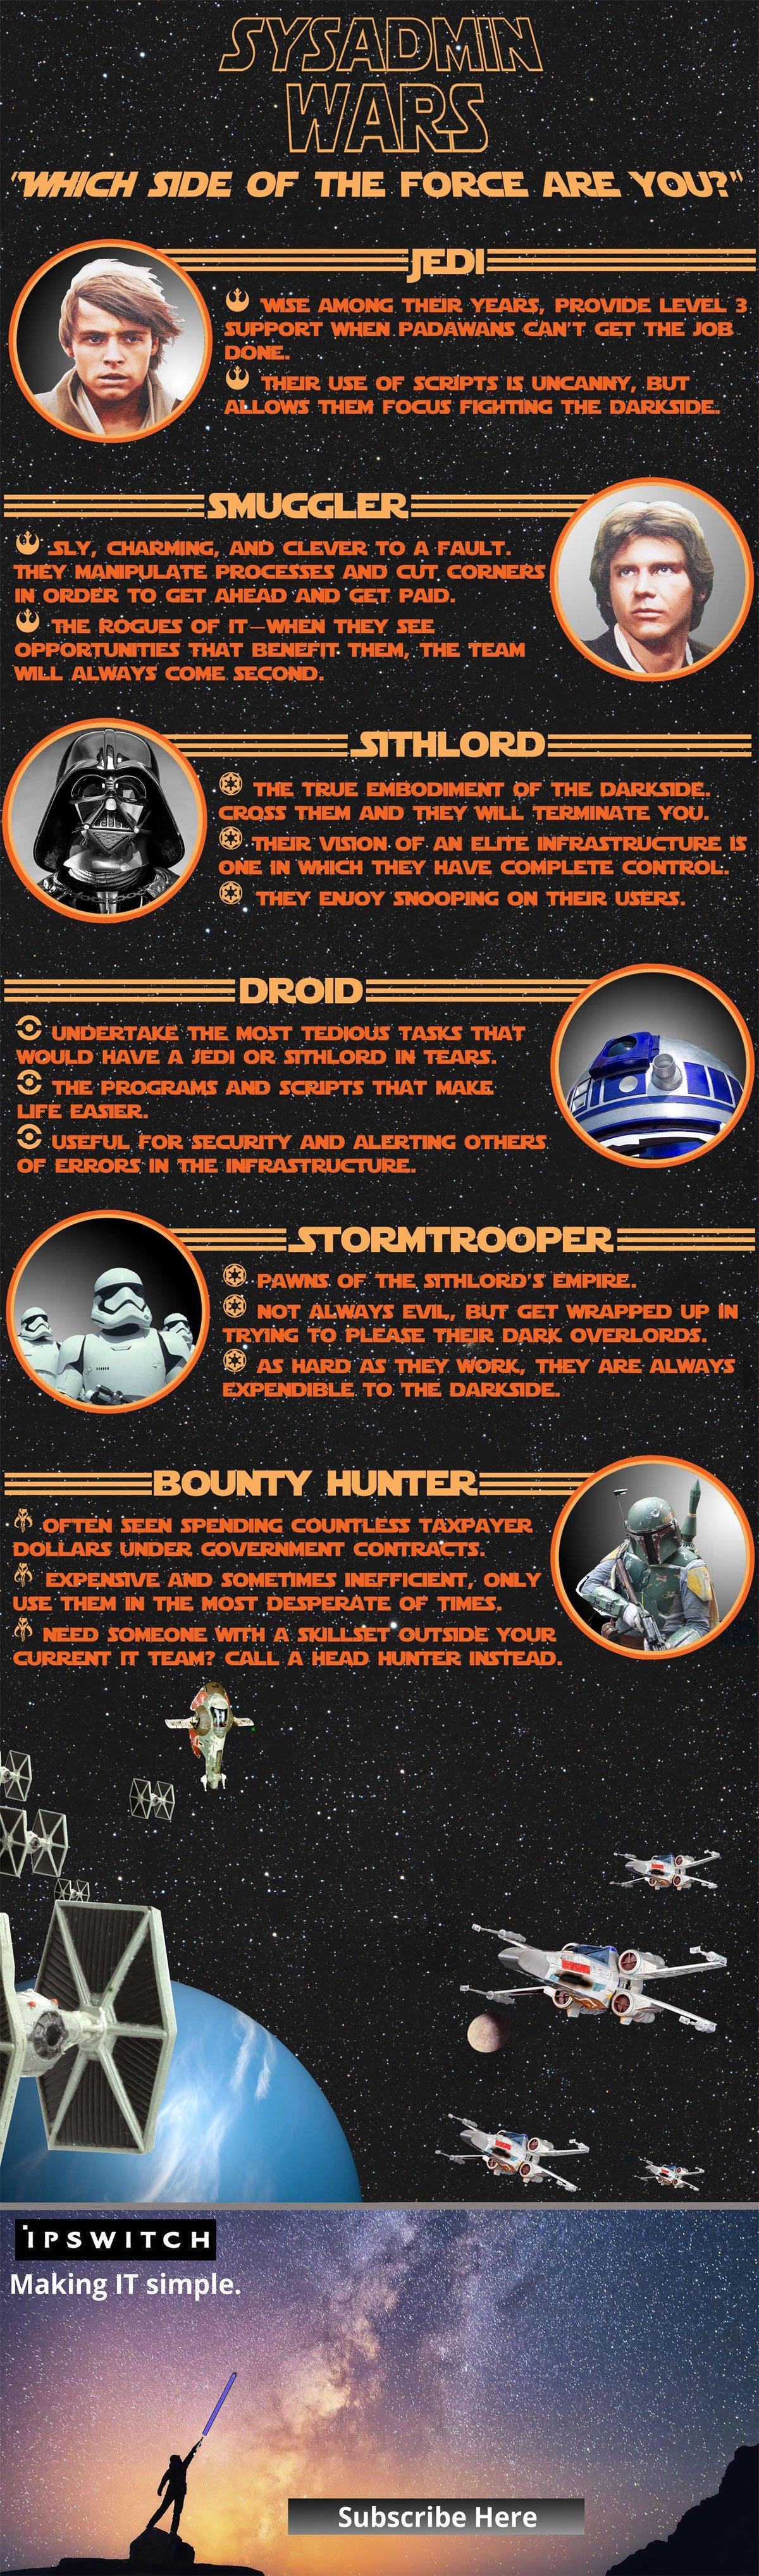 sysadmin-wars-infographic